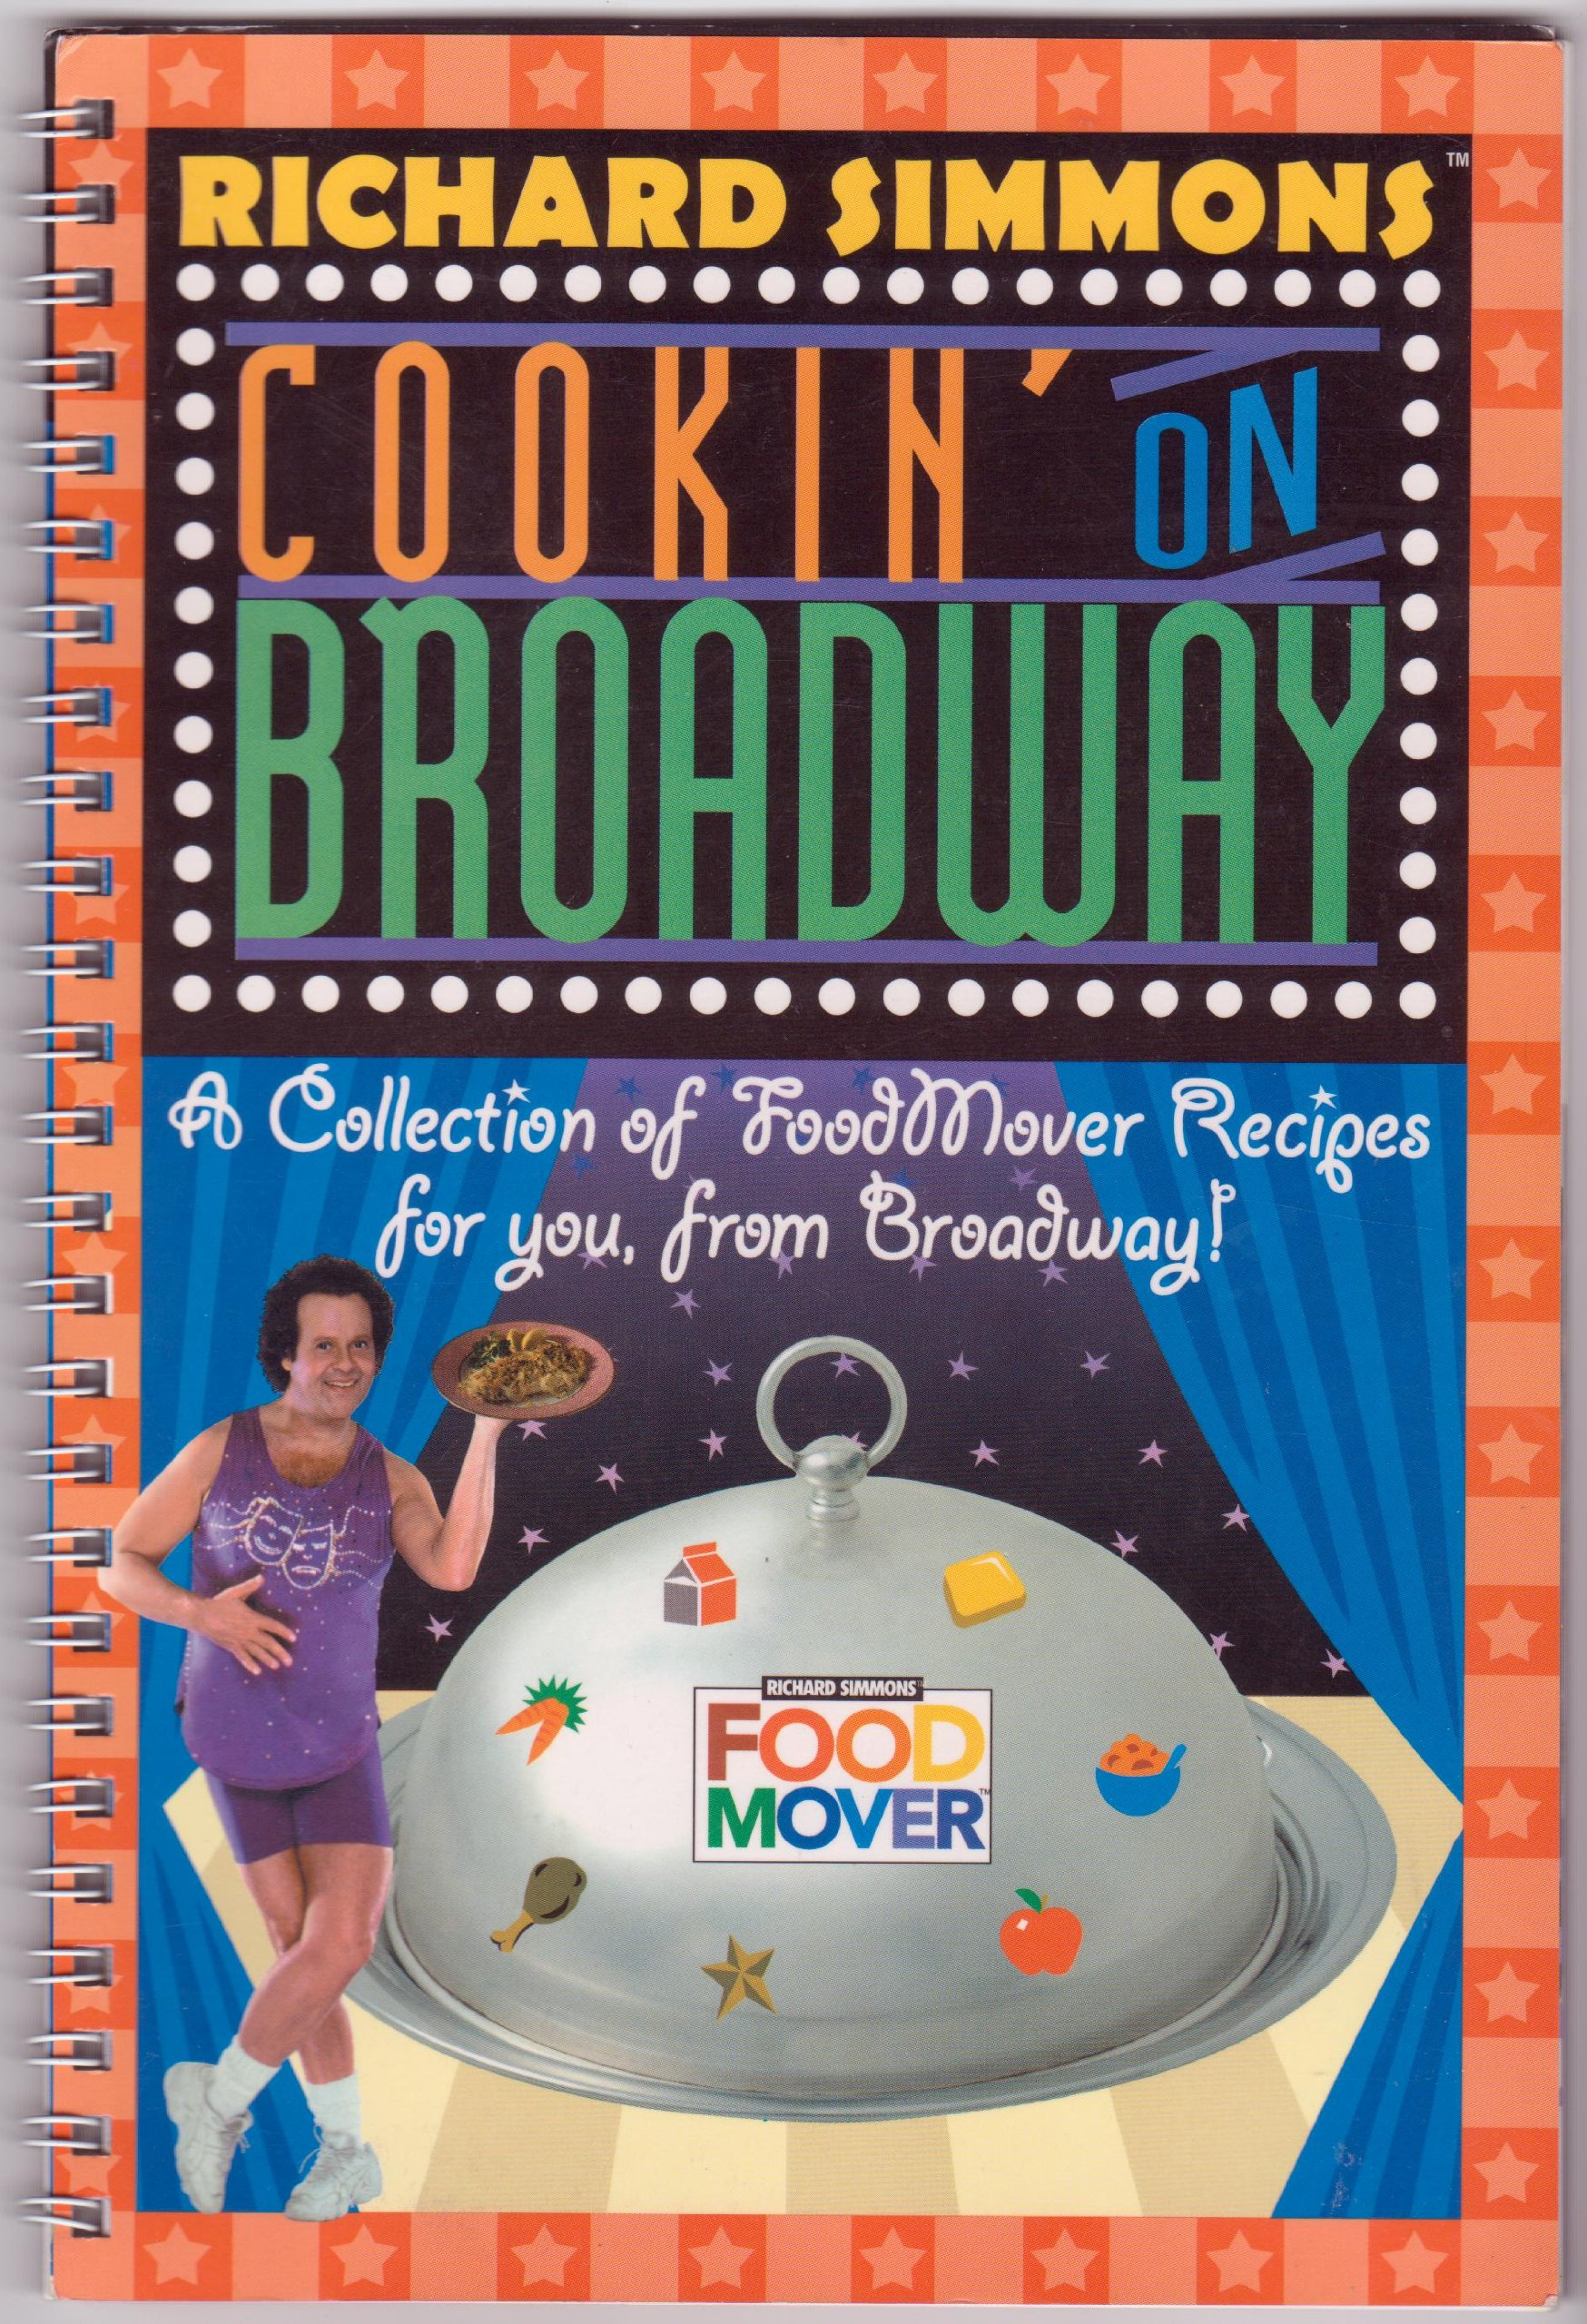 Richard Simmons Food Mover: A Collection of FoodMover Recipes For You, from Broadway! ebook